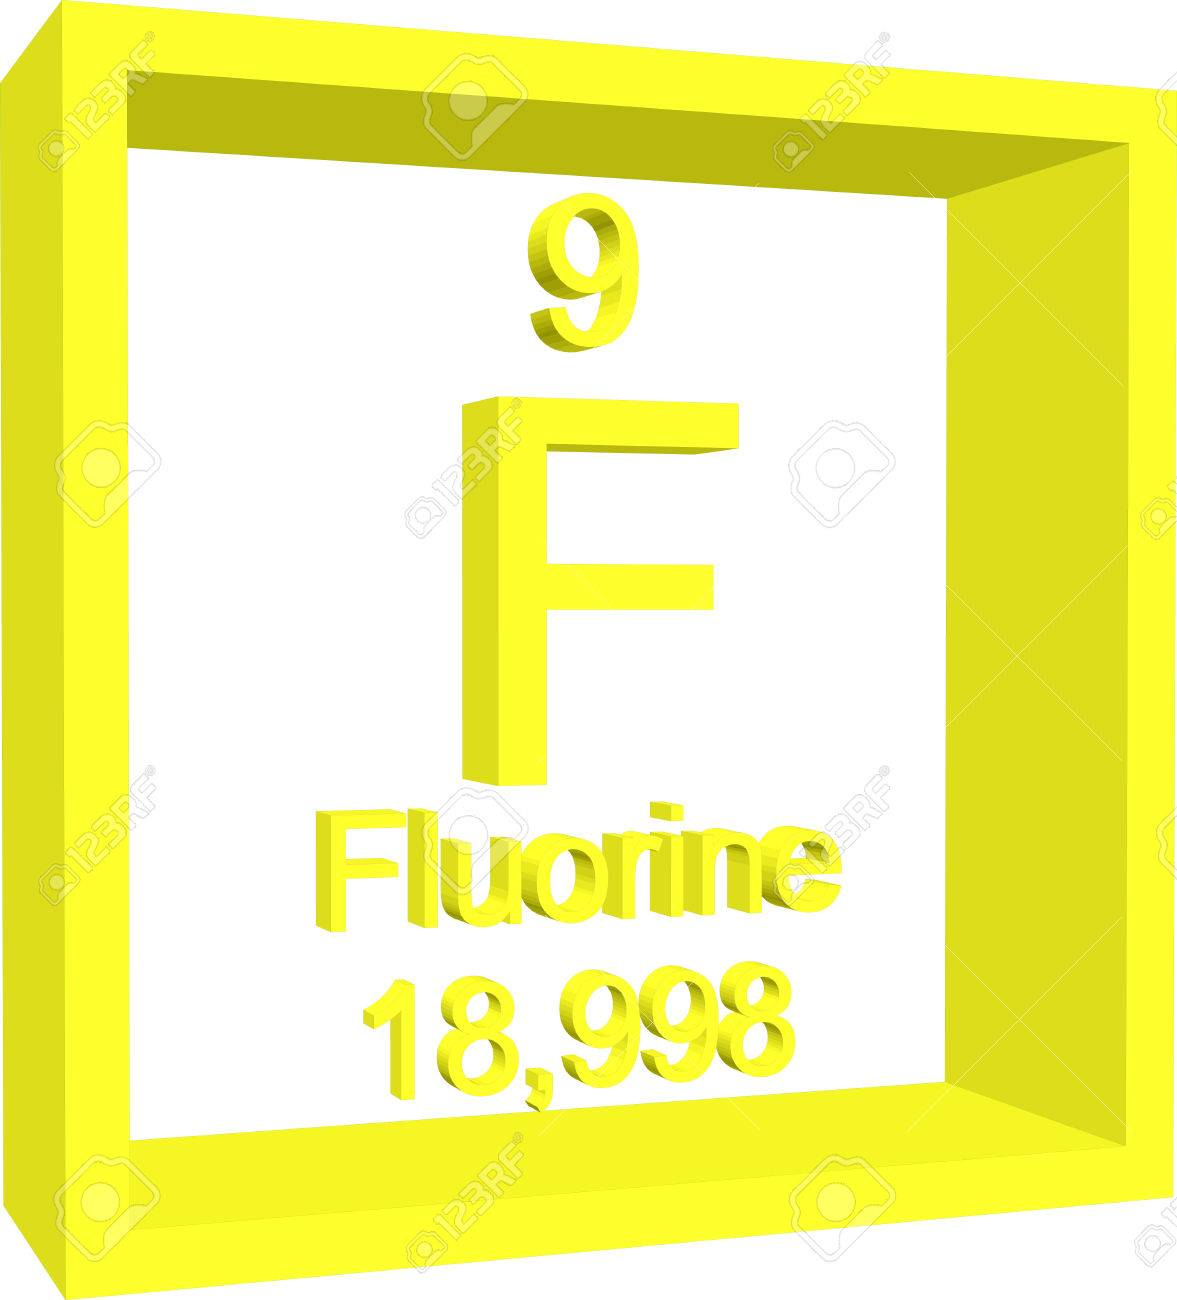 Fluorine in periodic table image collections periodic table images periodic table of elements fluorine image collections periodic periodic table of elements fluorine images periodic table gamestrikefo Gallery